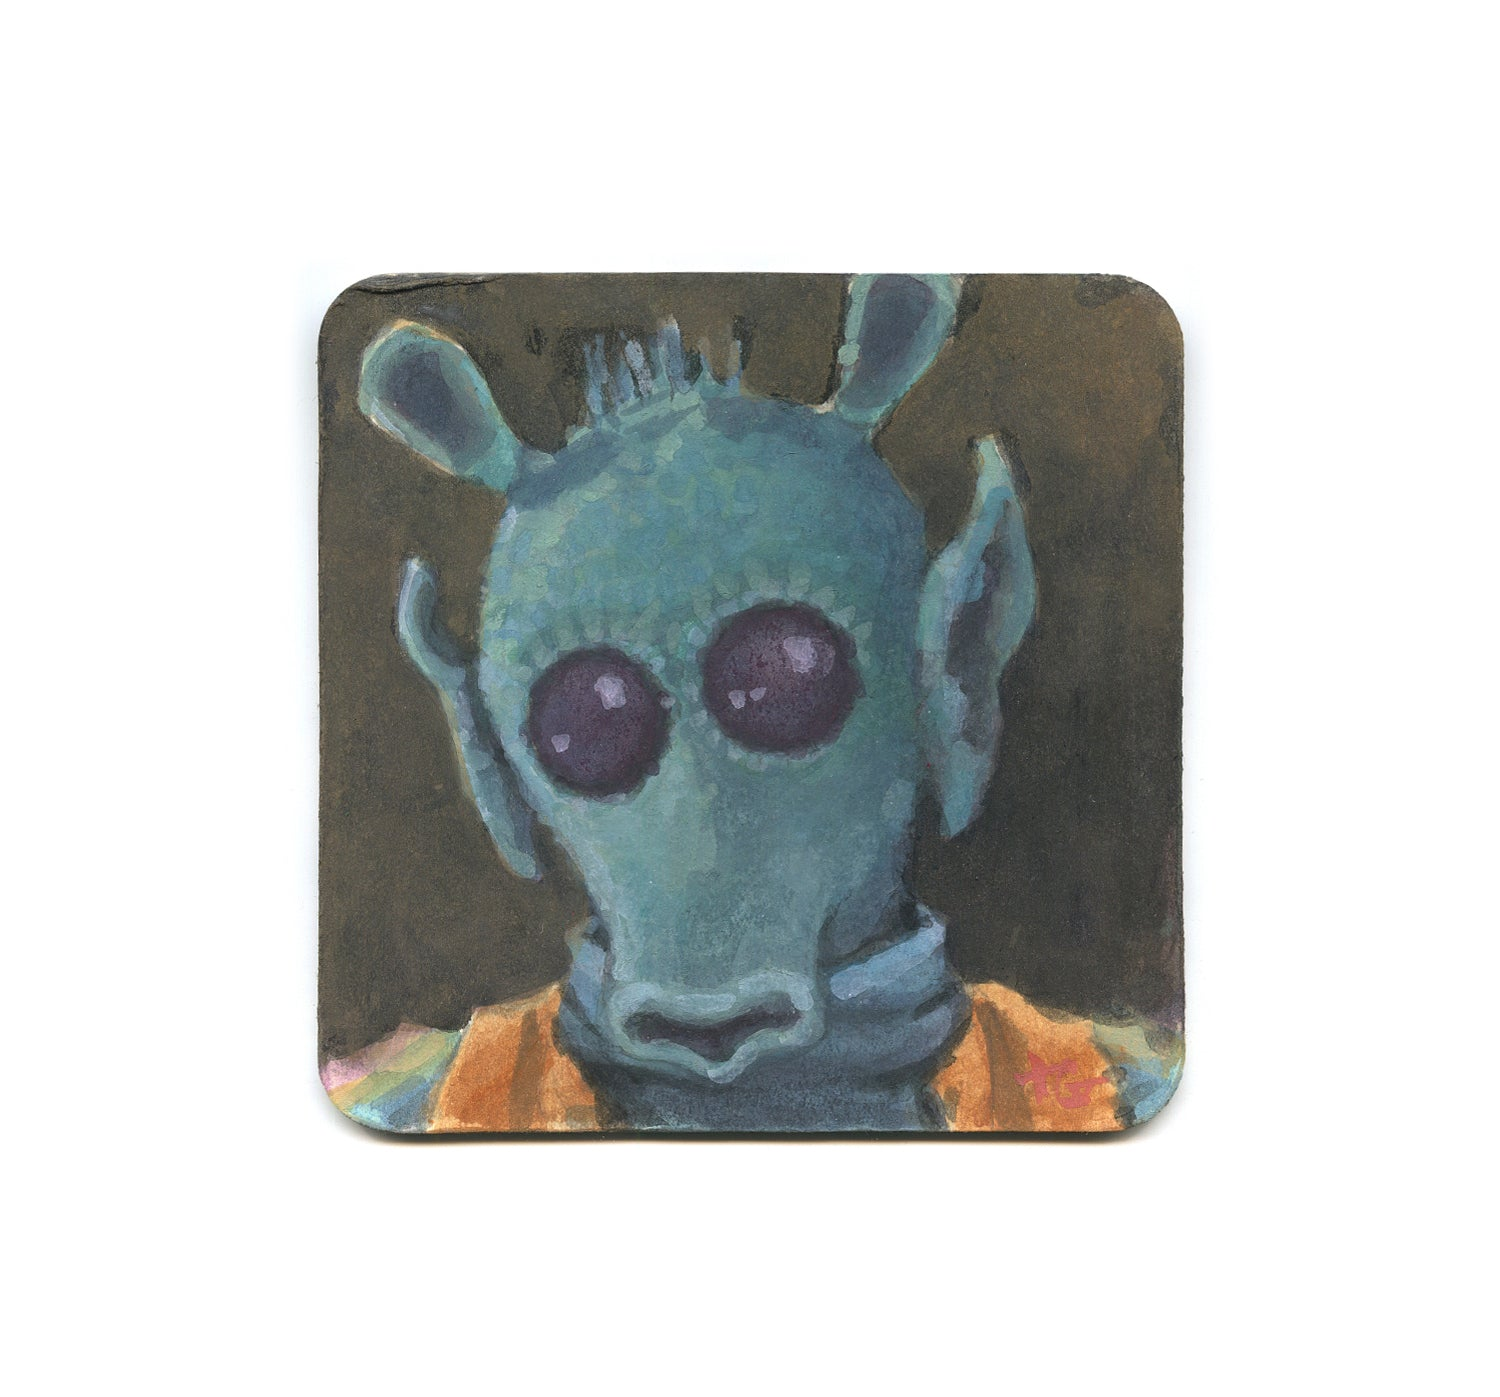 Terrence Gasca - Greedo Coaster